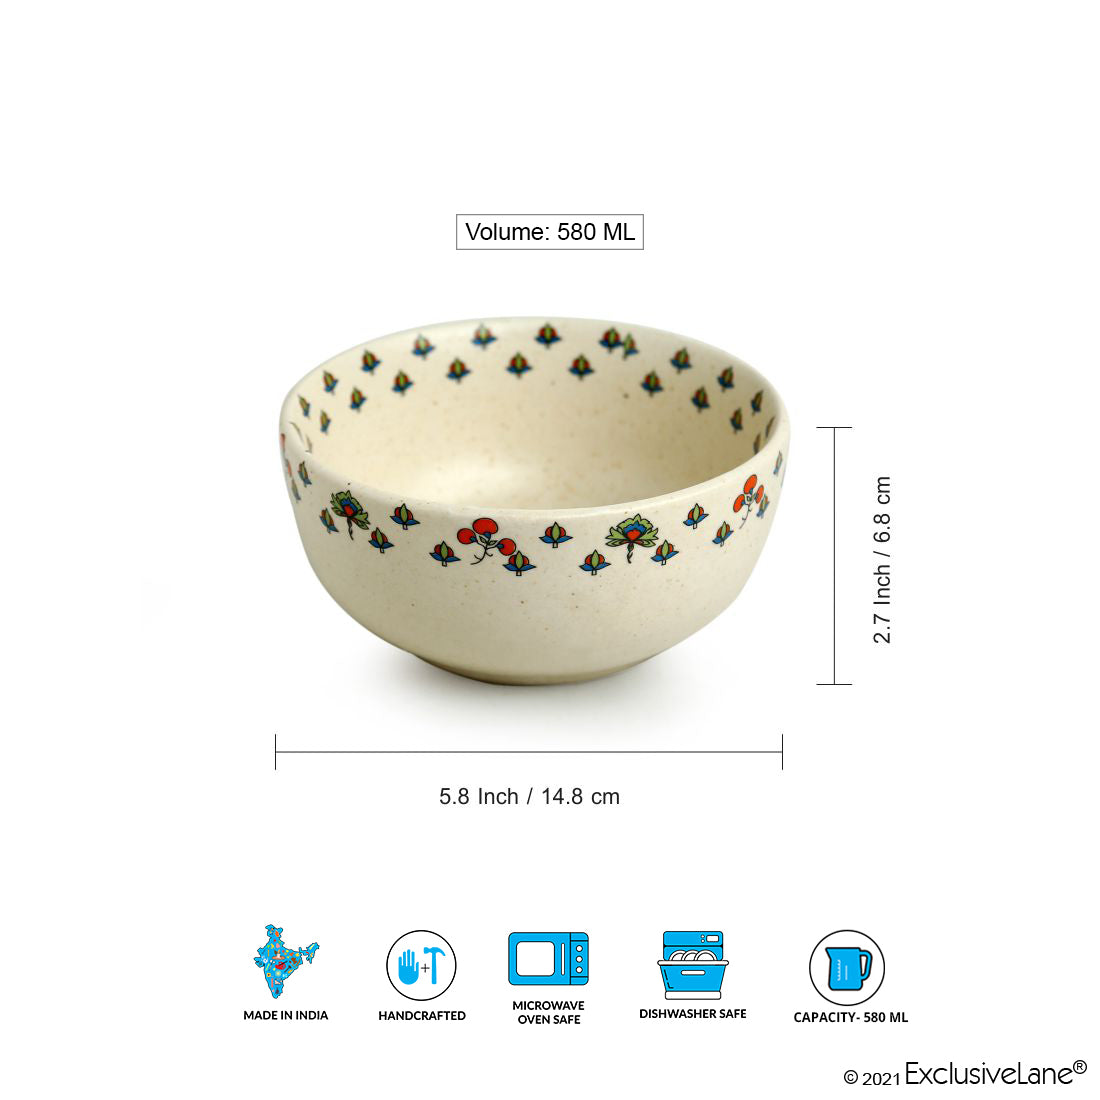 'Daawat-e-Taj' Handcrafted Ceramic Serving Bowls (Set of 2, 580 ml, Microwave Safe)